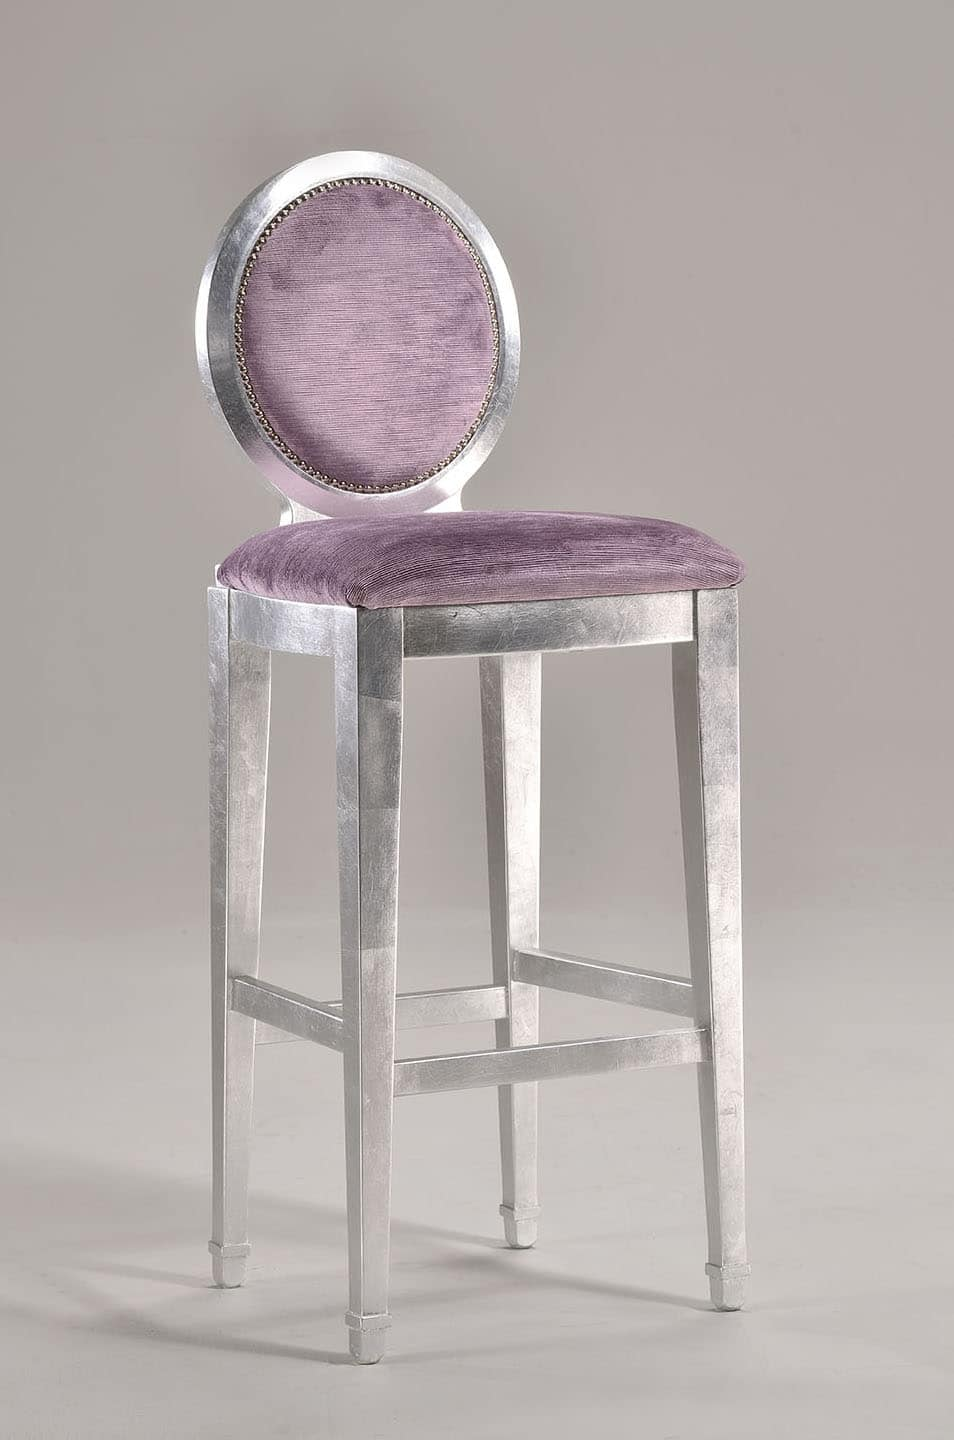 LUNA barstool 8269B, Fixed height stool with oval backrest, classic style